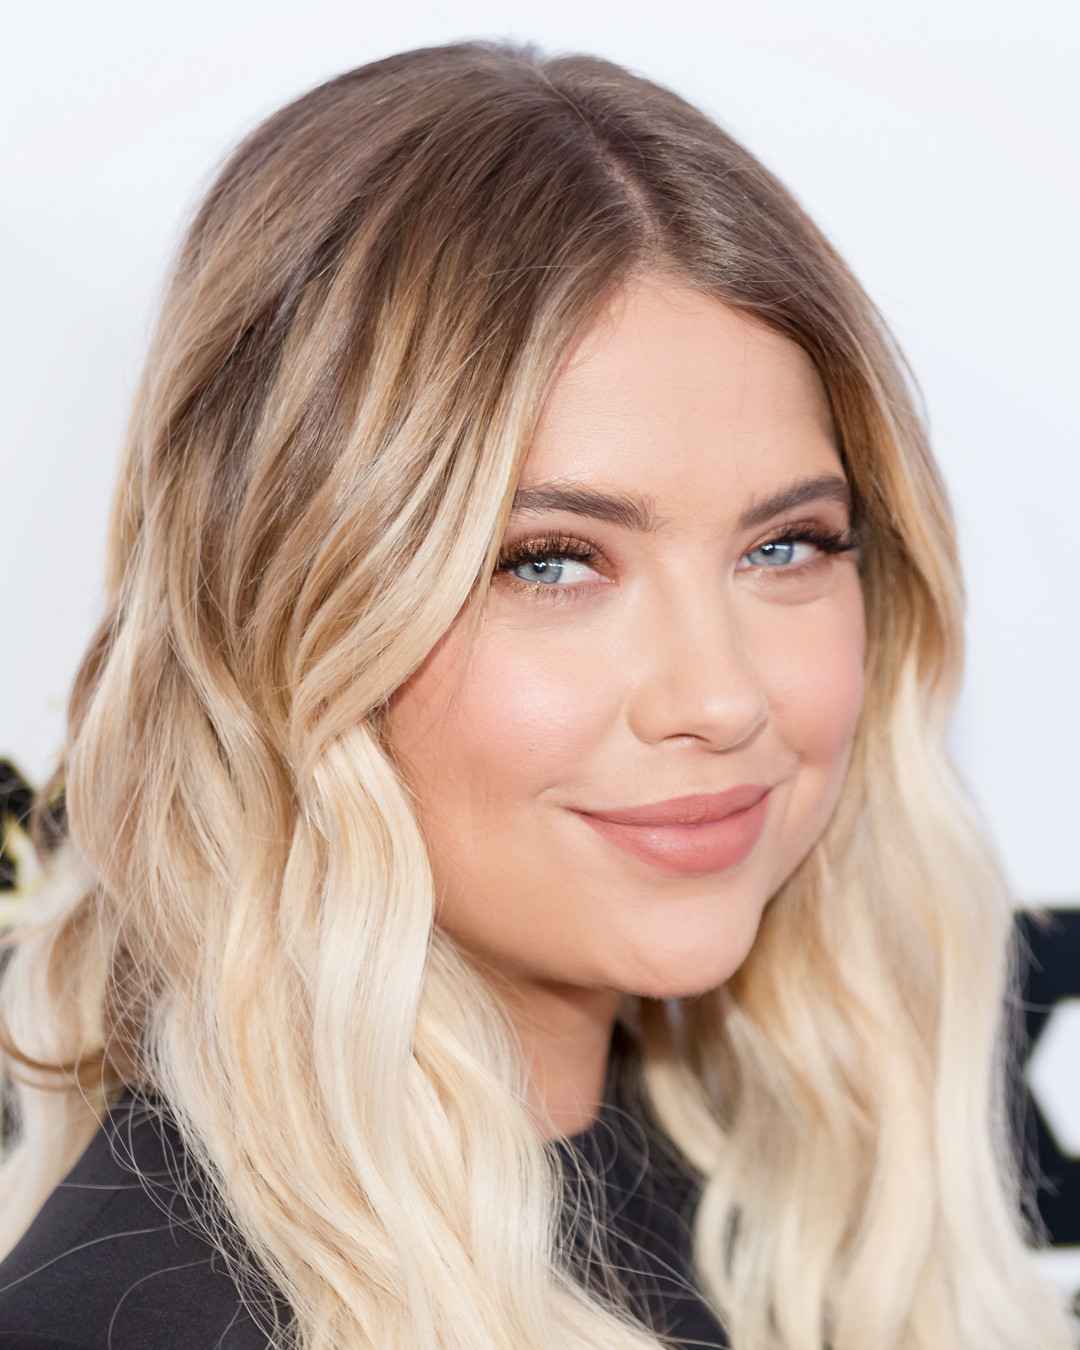 Ashley Bensons Summer Glow Is Courtesy Of This Natural -8707